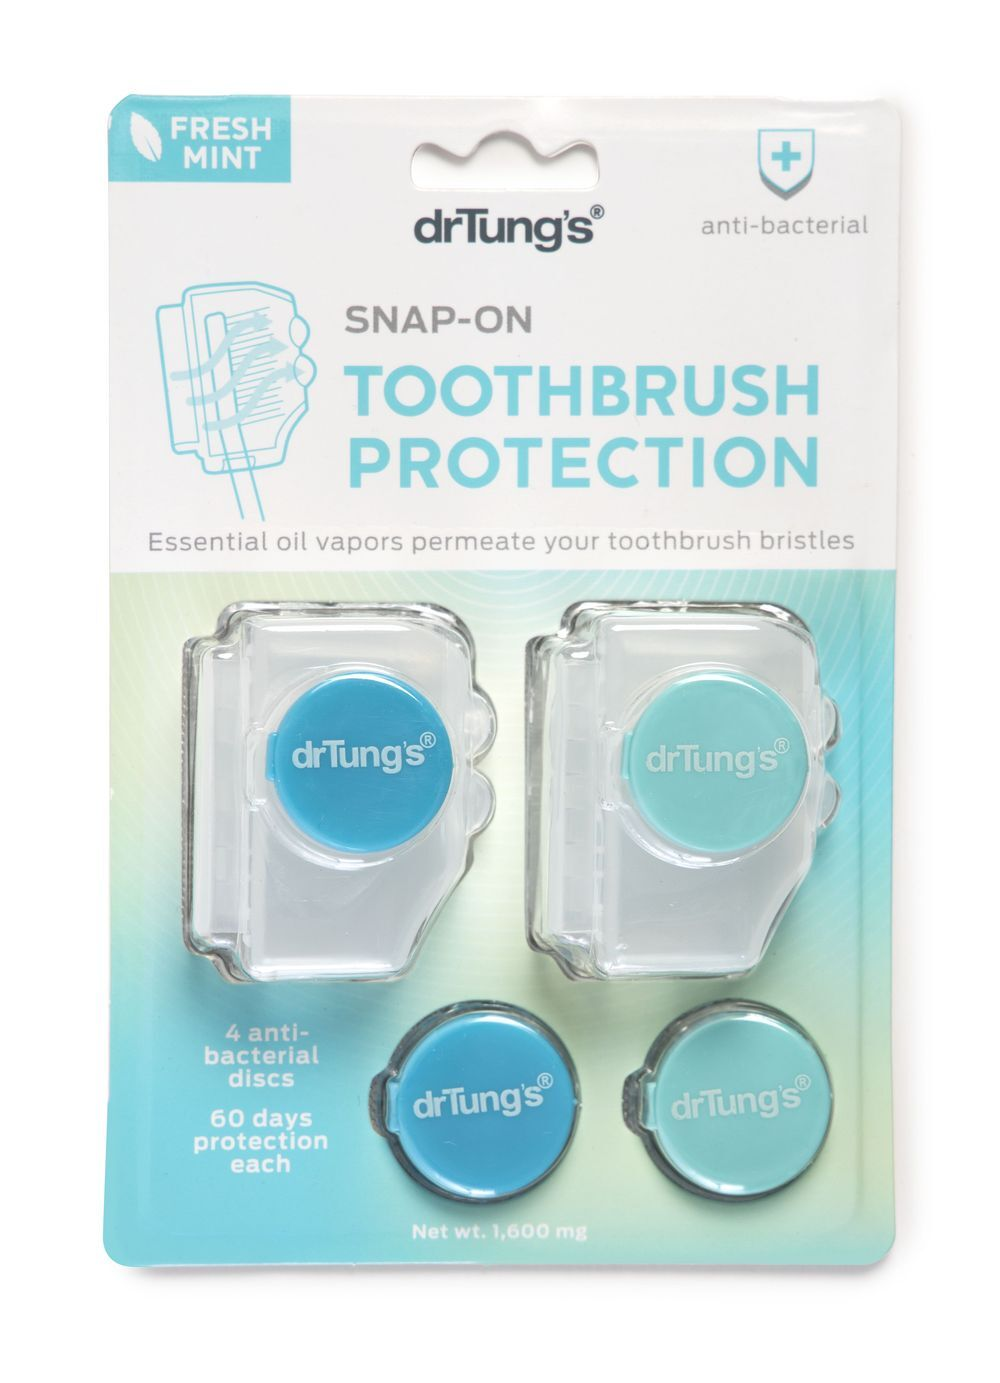 Dr Tung's Snap-on Toothbrush Protectors